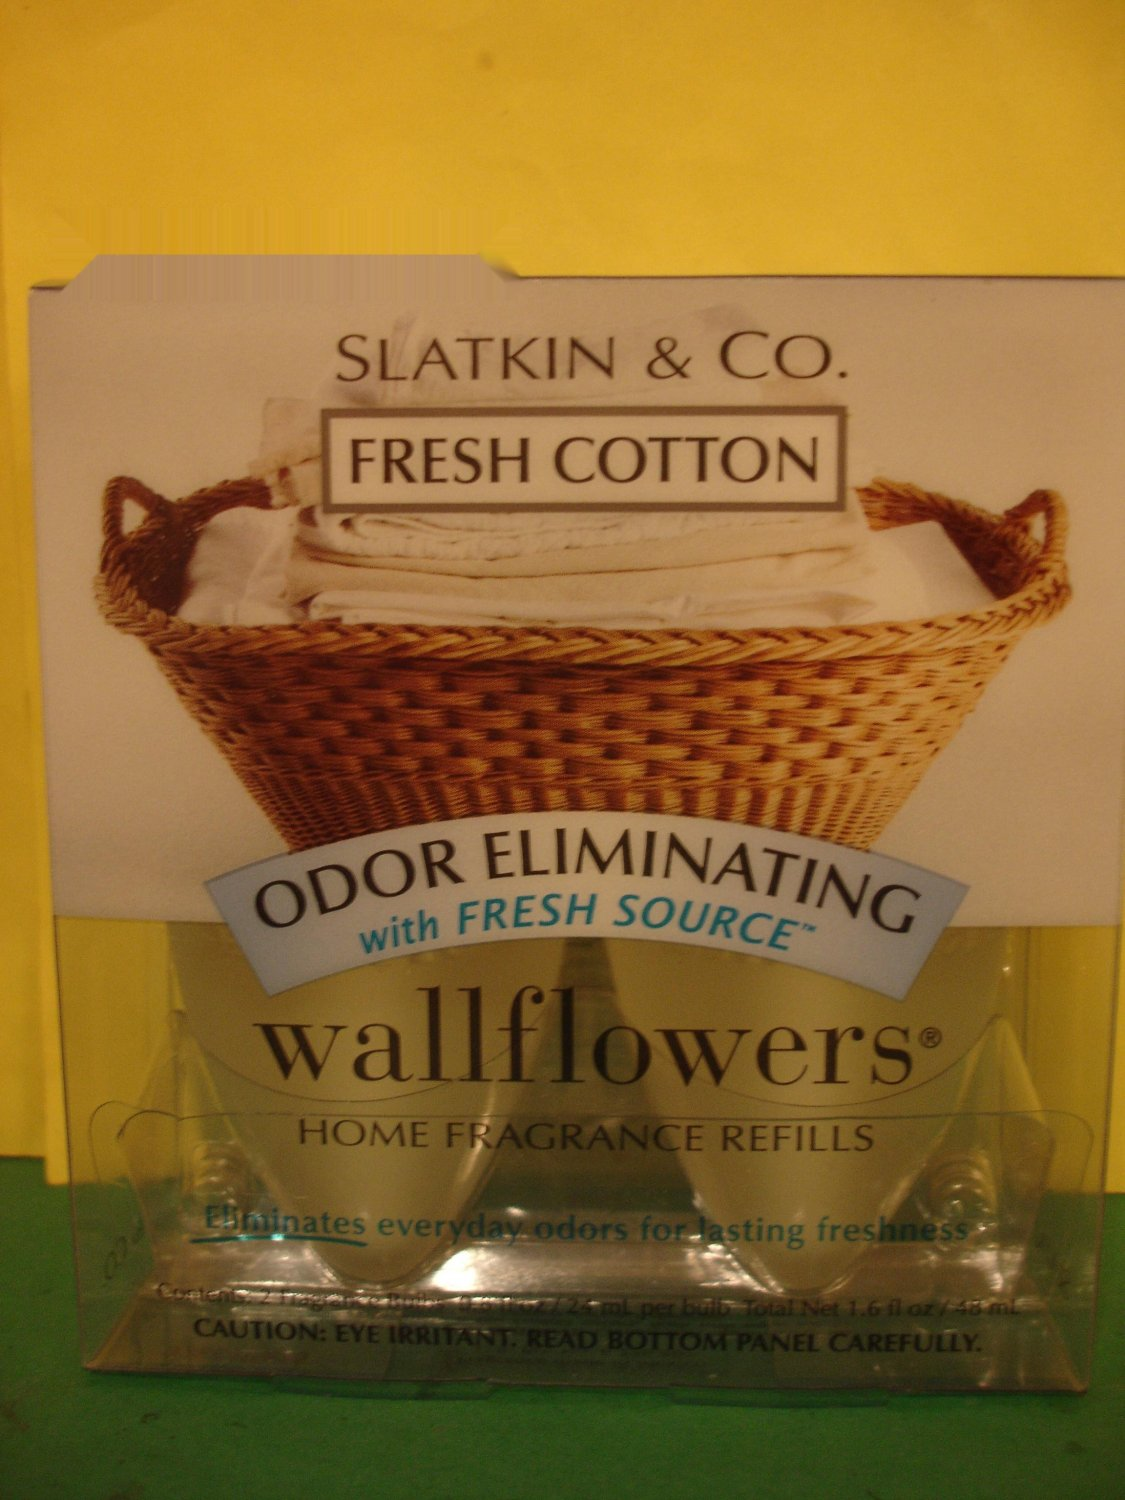 Bath & Body Works 2 Fresh Cotton Odor Eliminating Wallflower Refills